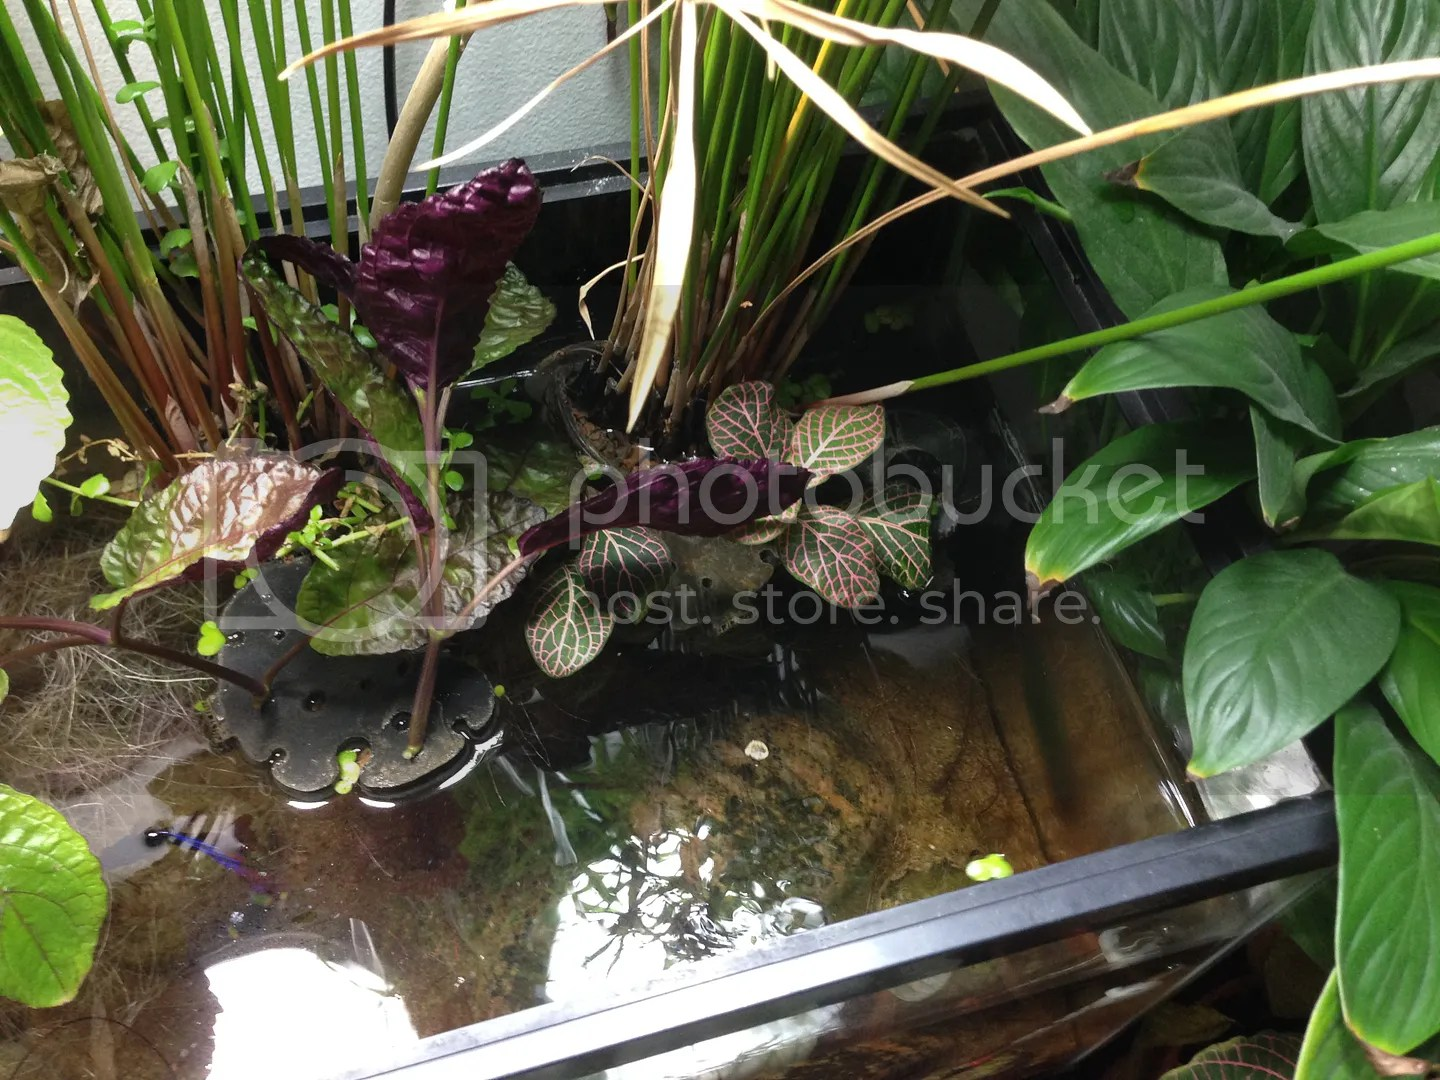 Serene And Since A Lazy Roots Have Taken Over Seem To G Riparium Ape Aquatic Plant Enthusiasts A Planted Aquarium Purple Waffle Plant Propagation Purple Waffle Plant Air Purifier houzz-03 Purple Waffle Plant